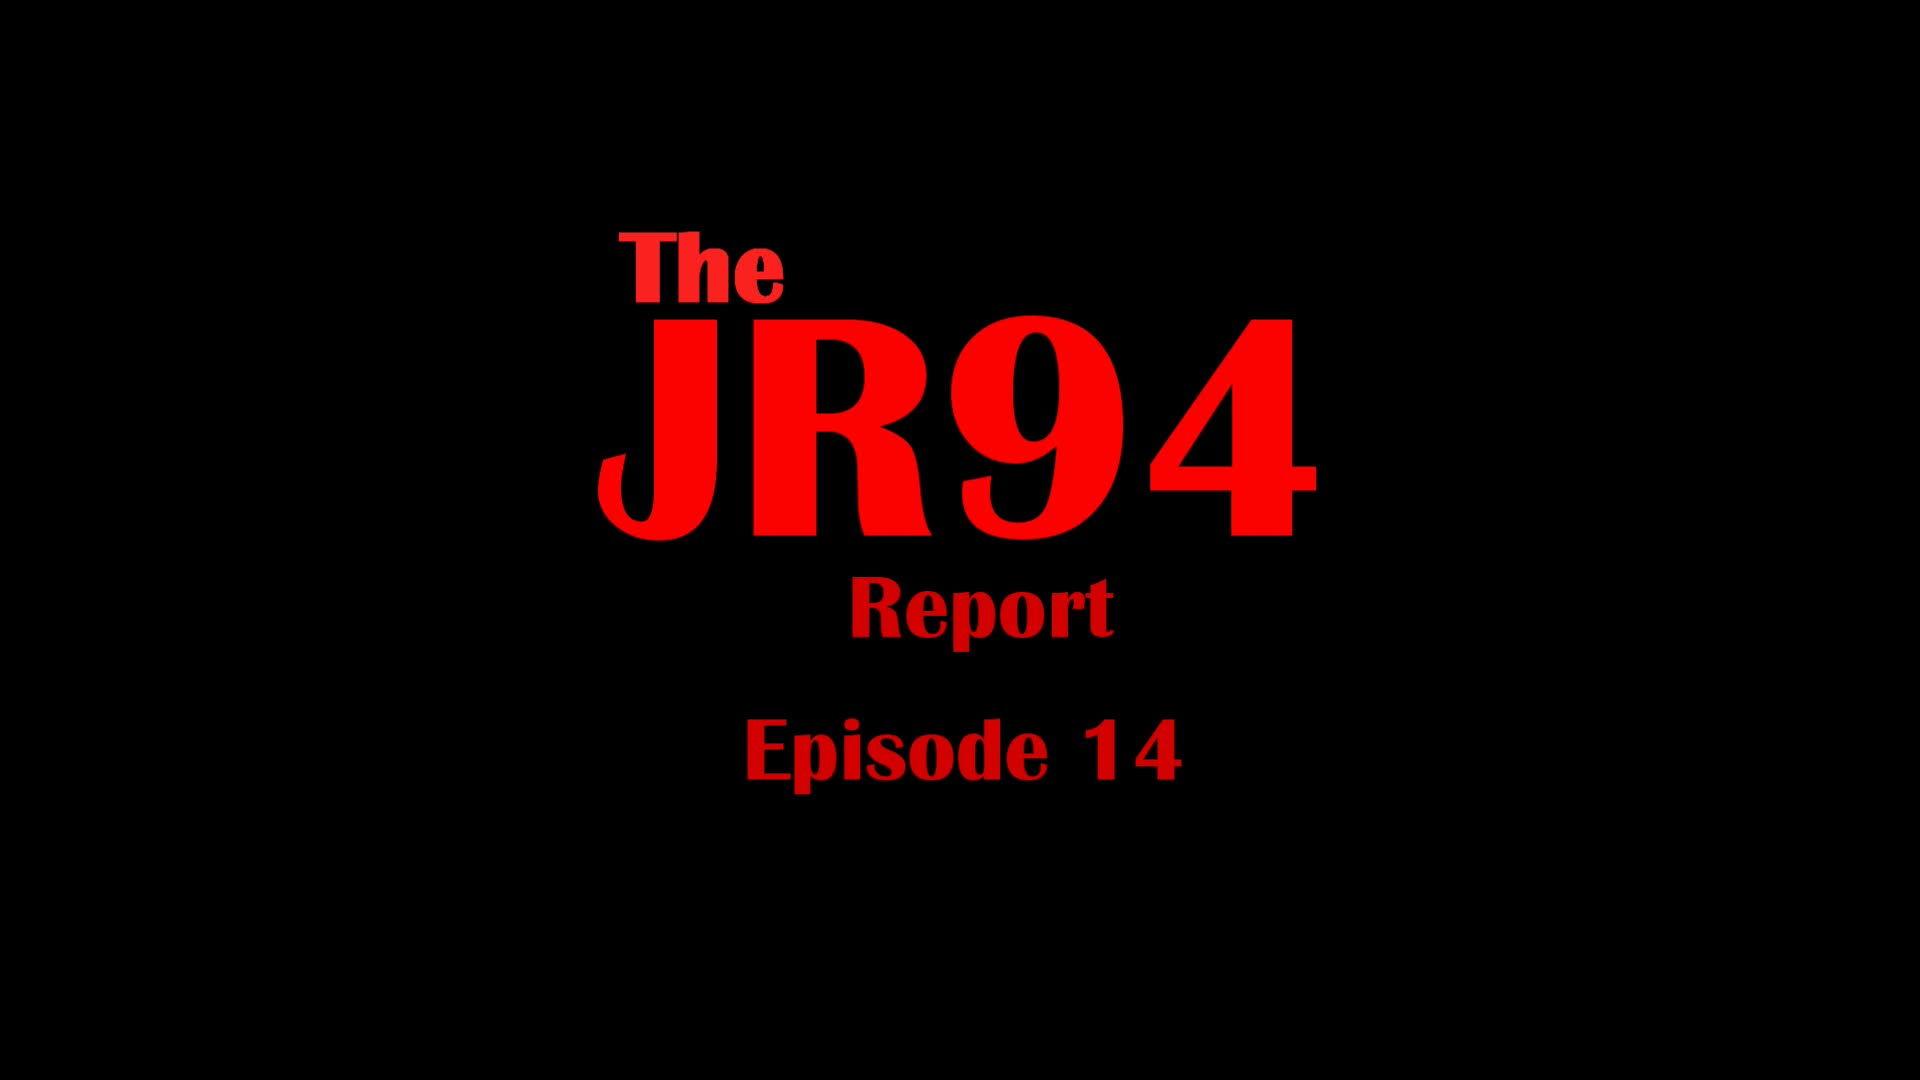 The JR94 Report Episode 14